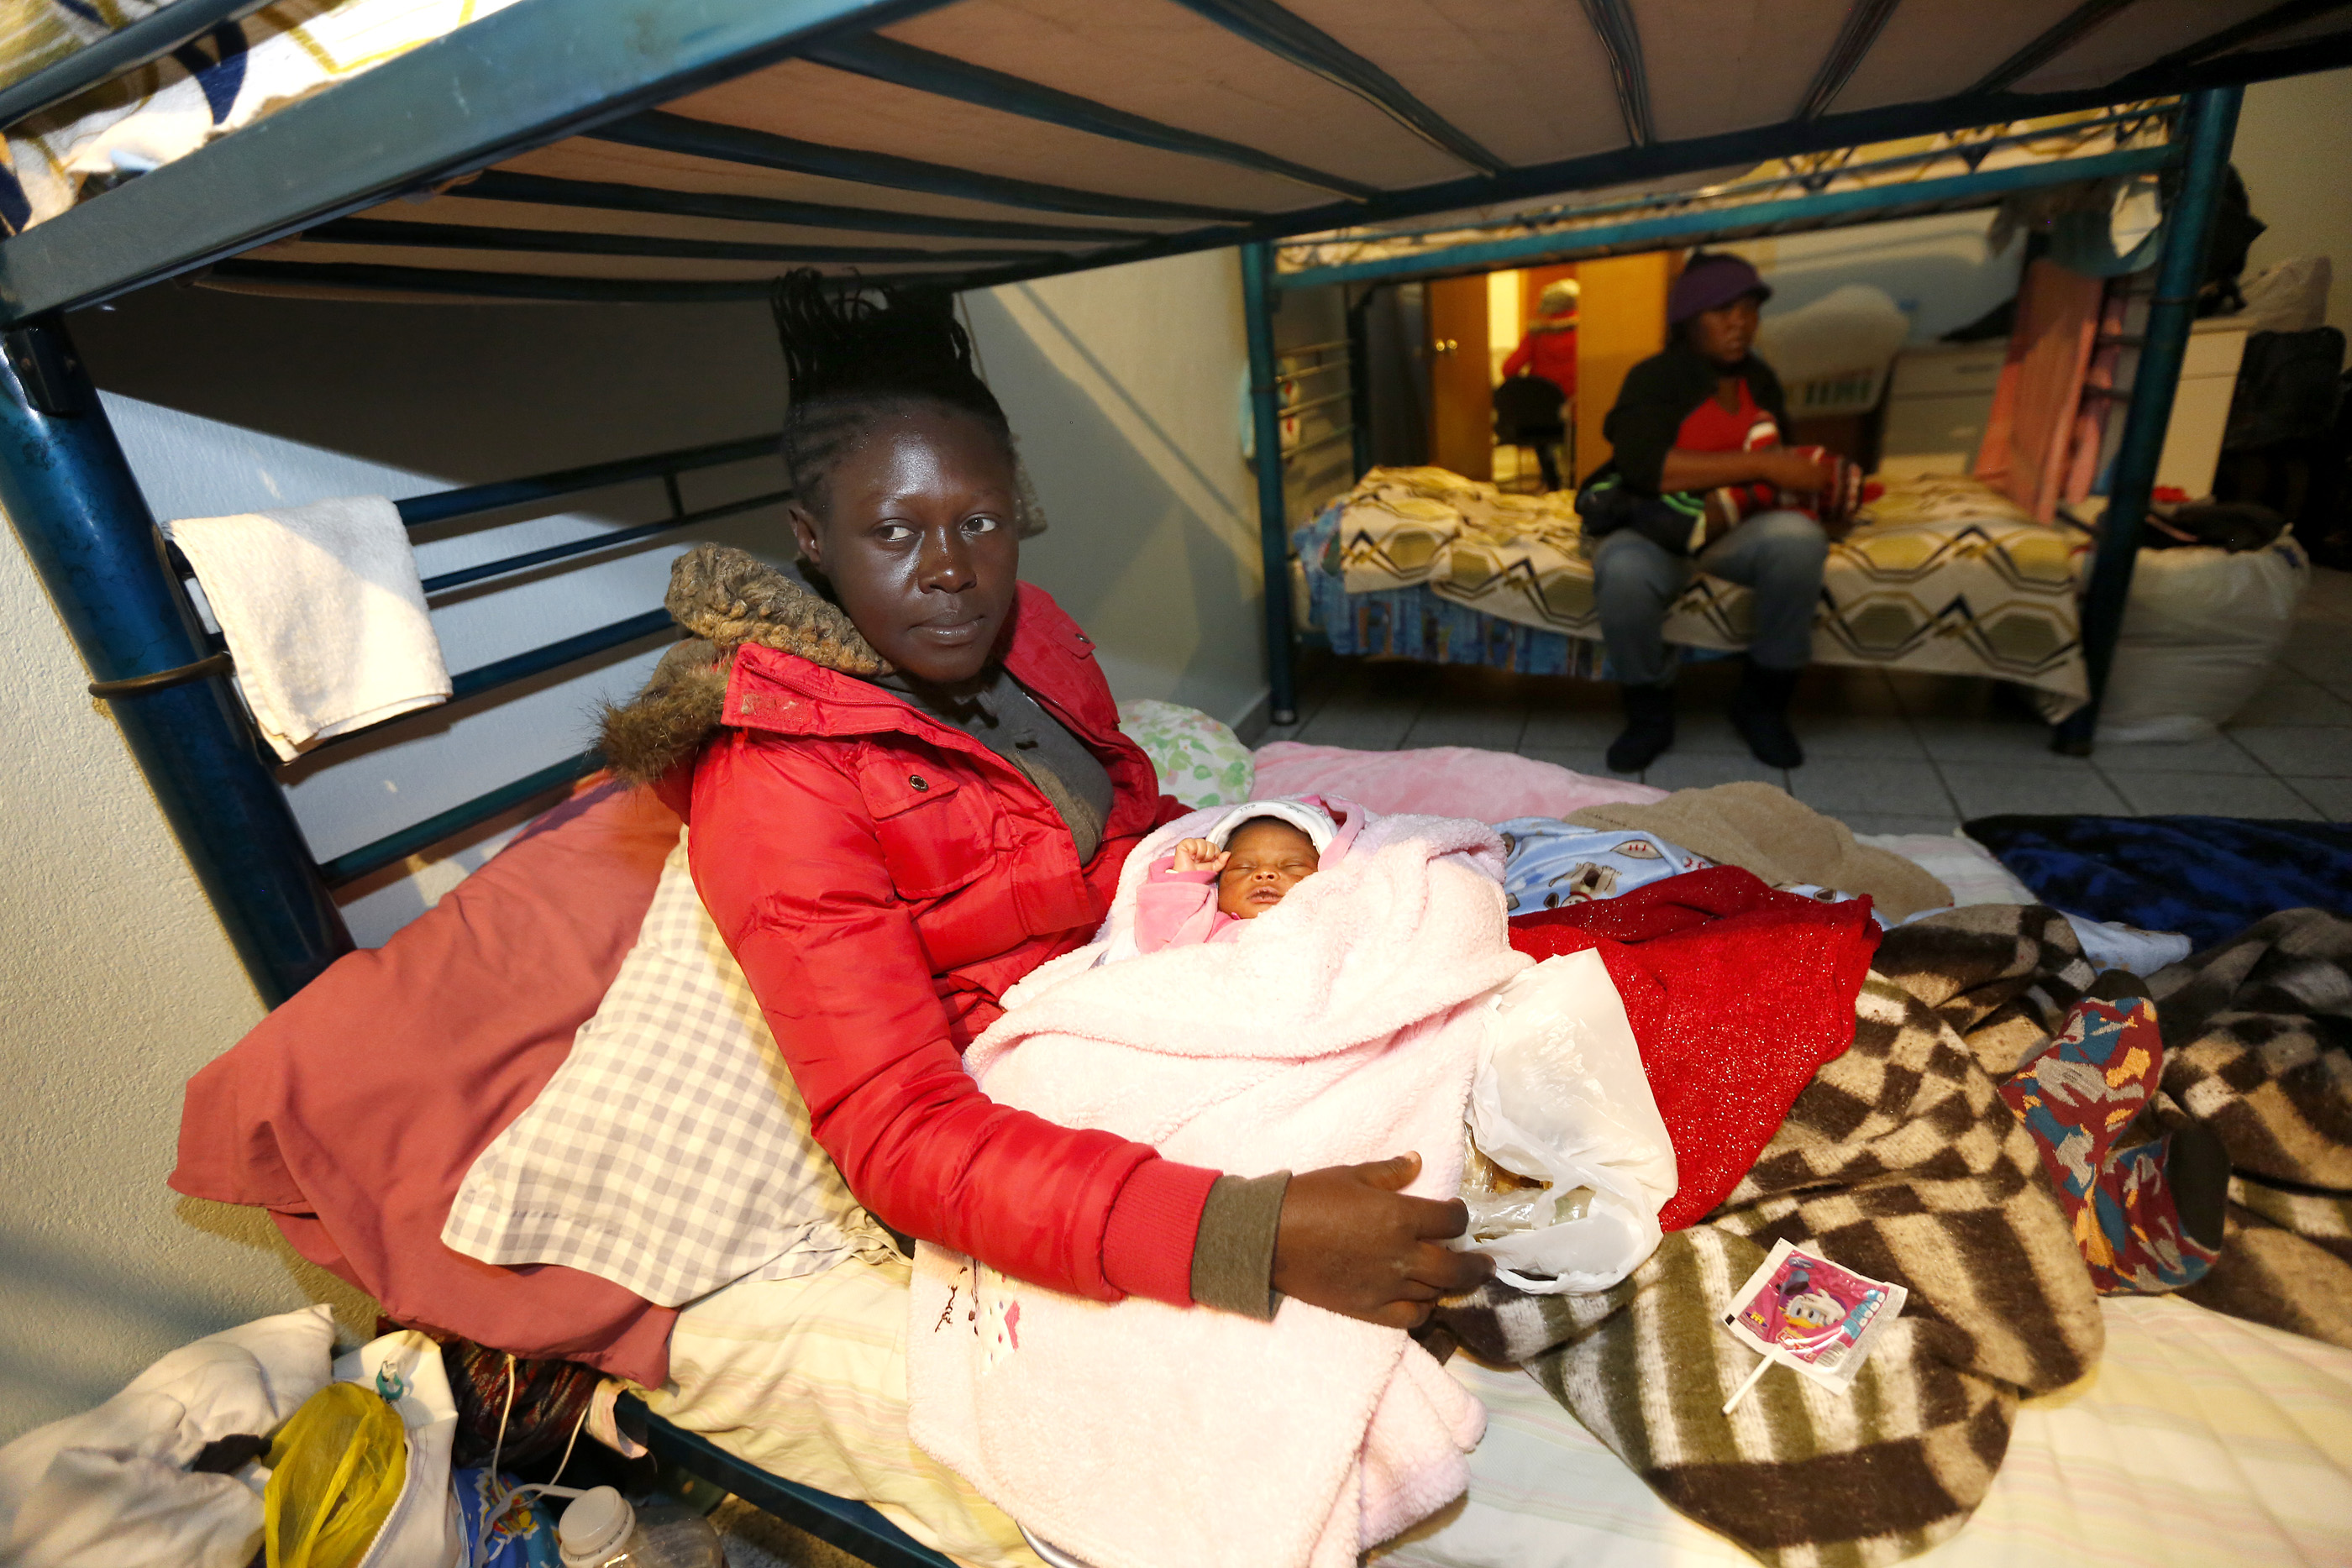 12/08/16/ TIJUANA/Haitian refugee Rosehie Su-Baptiste with her new born daughter, seek shelter at Centro Madre Assunta in Tijuana. An unprecedented arrival of Haitians and others seeking entry into the United States in recent weeks has sent Tijuanas migrant shelters scrambling to find beds, blankets, food and other necessities to serve this increase of people awaiting processing by U.S. authorities. (Photo Aurelia Ventura/ La Opinion)